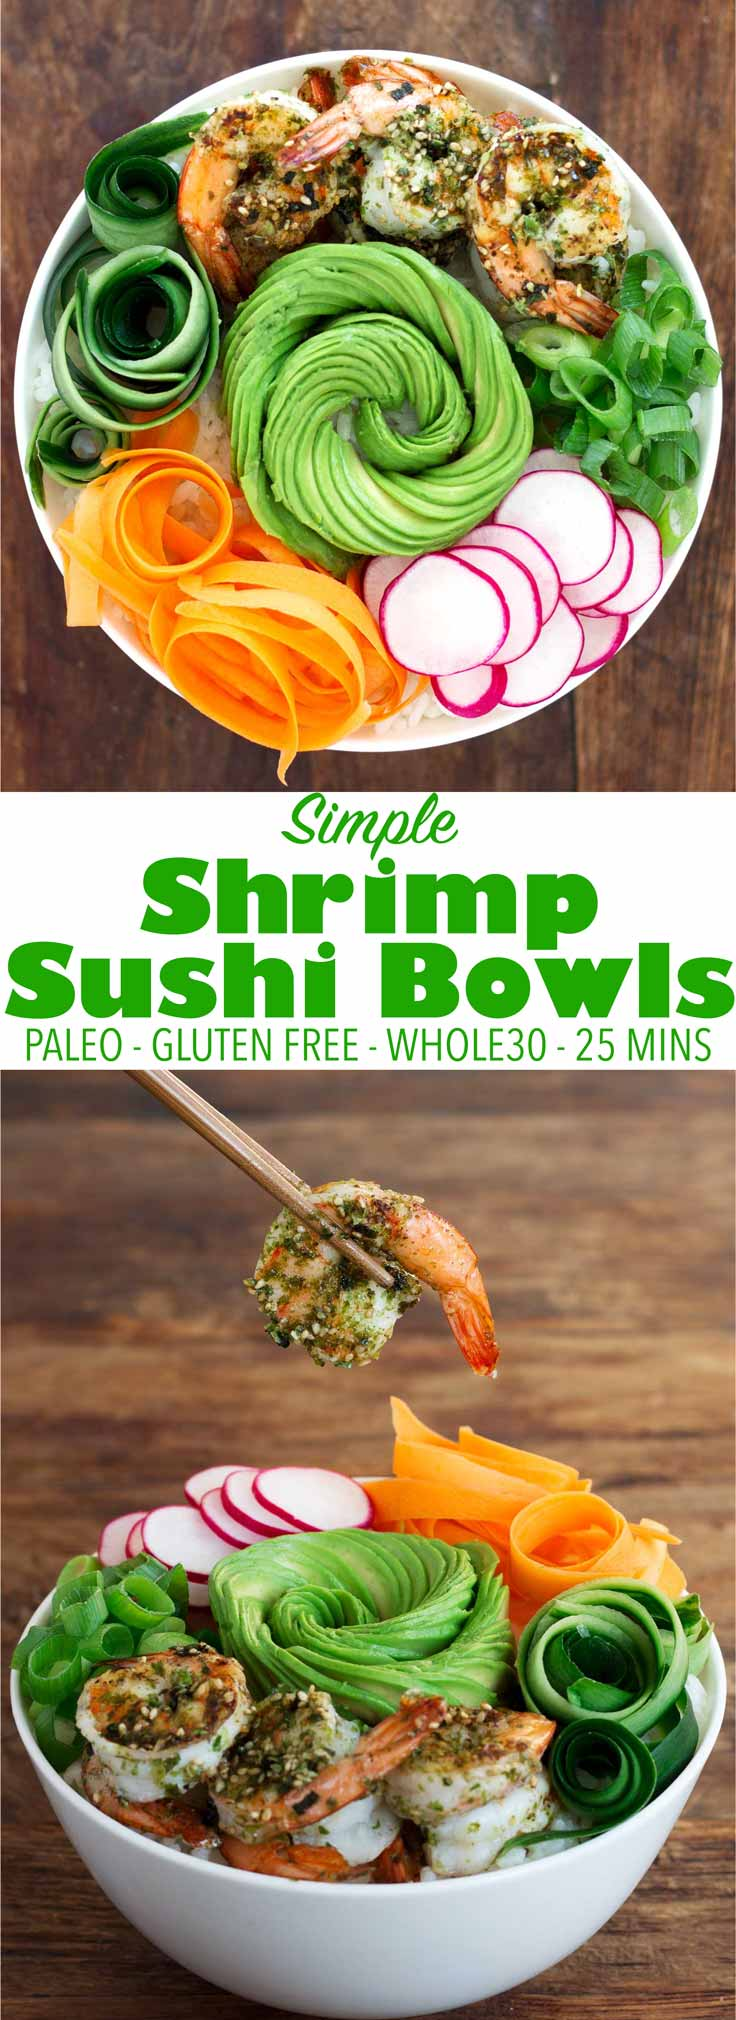 These sushi bowls only take 25 mins to make and are perfect for a quick weeknight meal. They are gluten free and can be made paleo and low carb/keto!